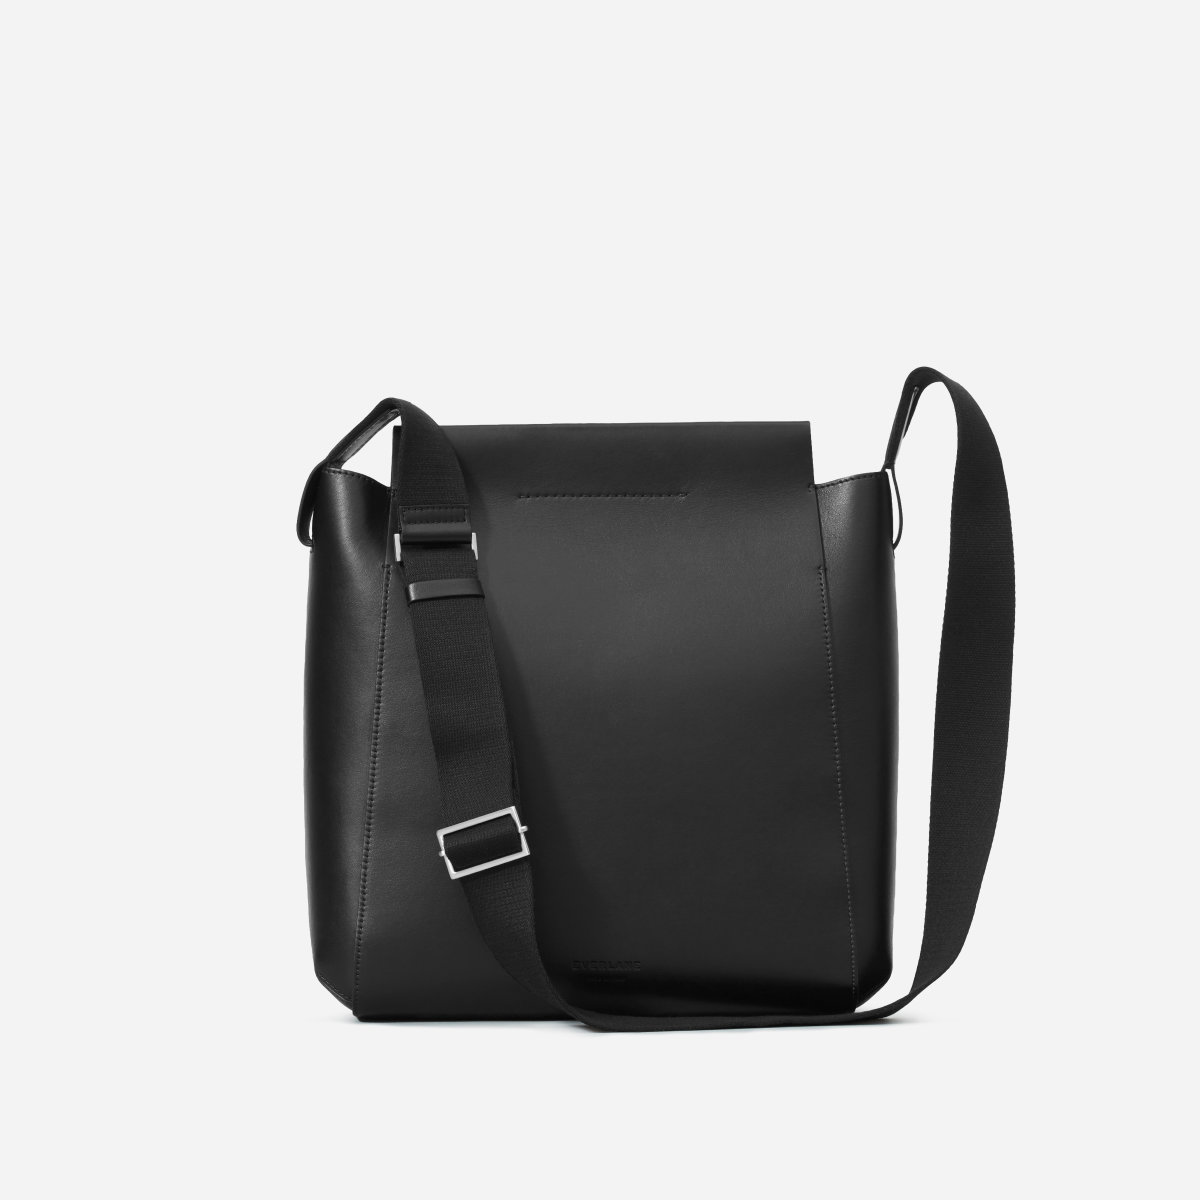 The Form Bag by Everlane